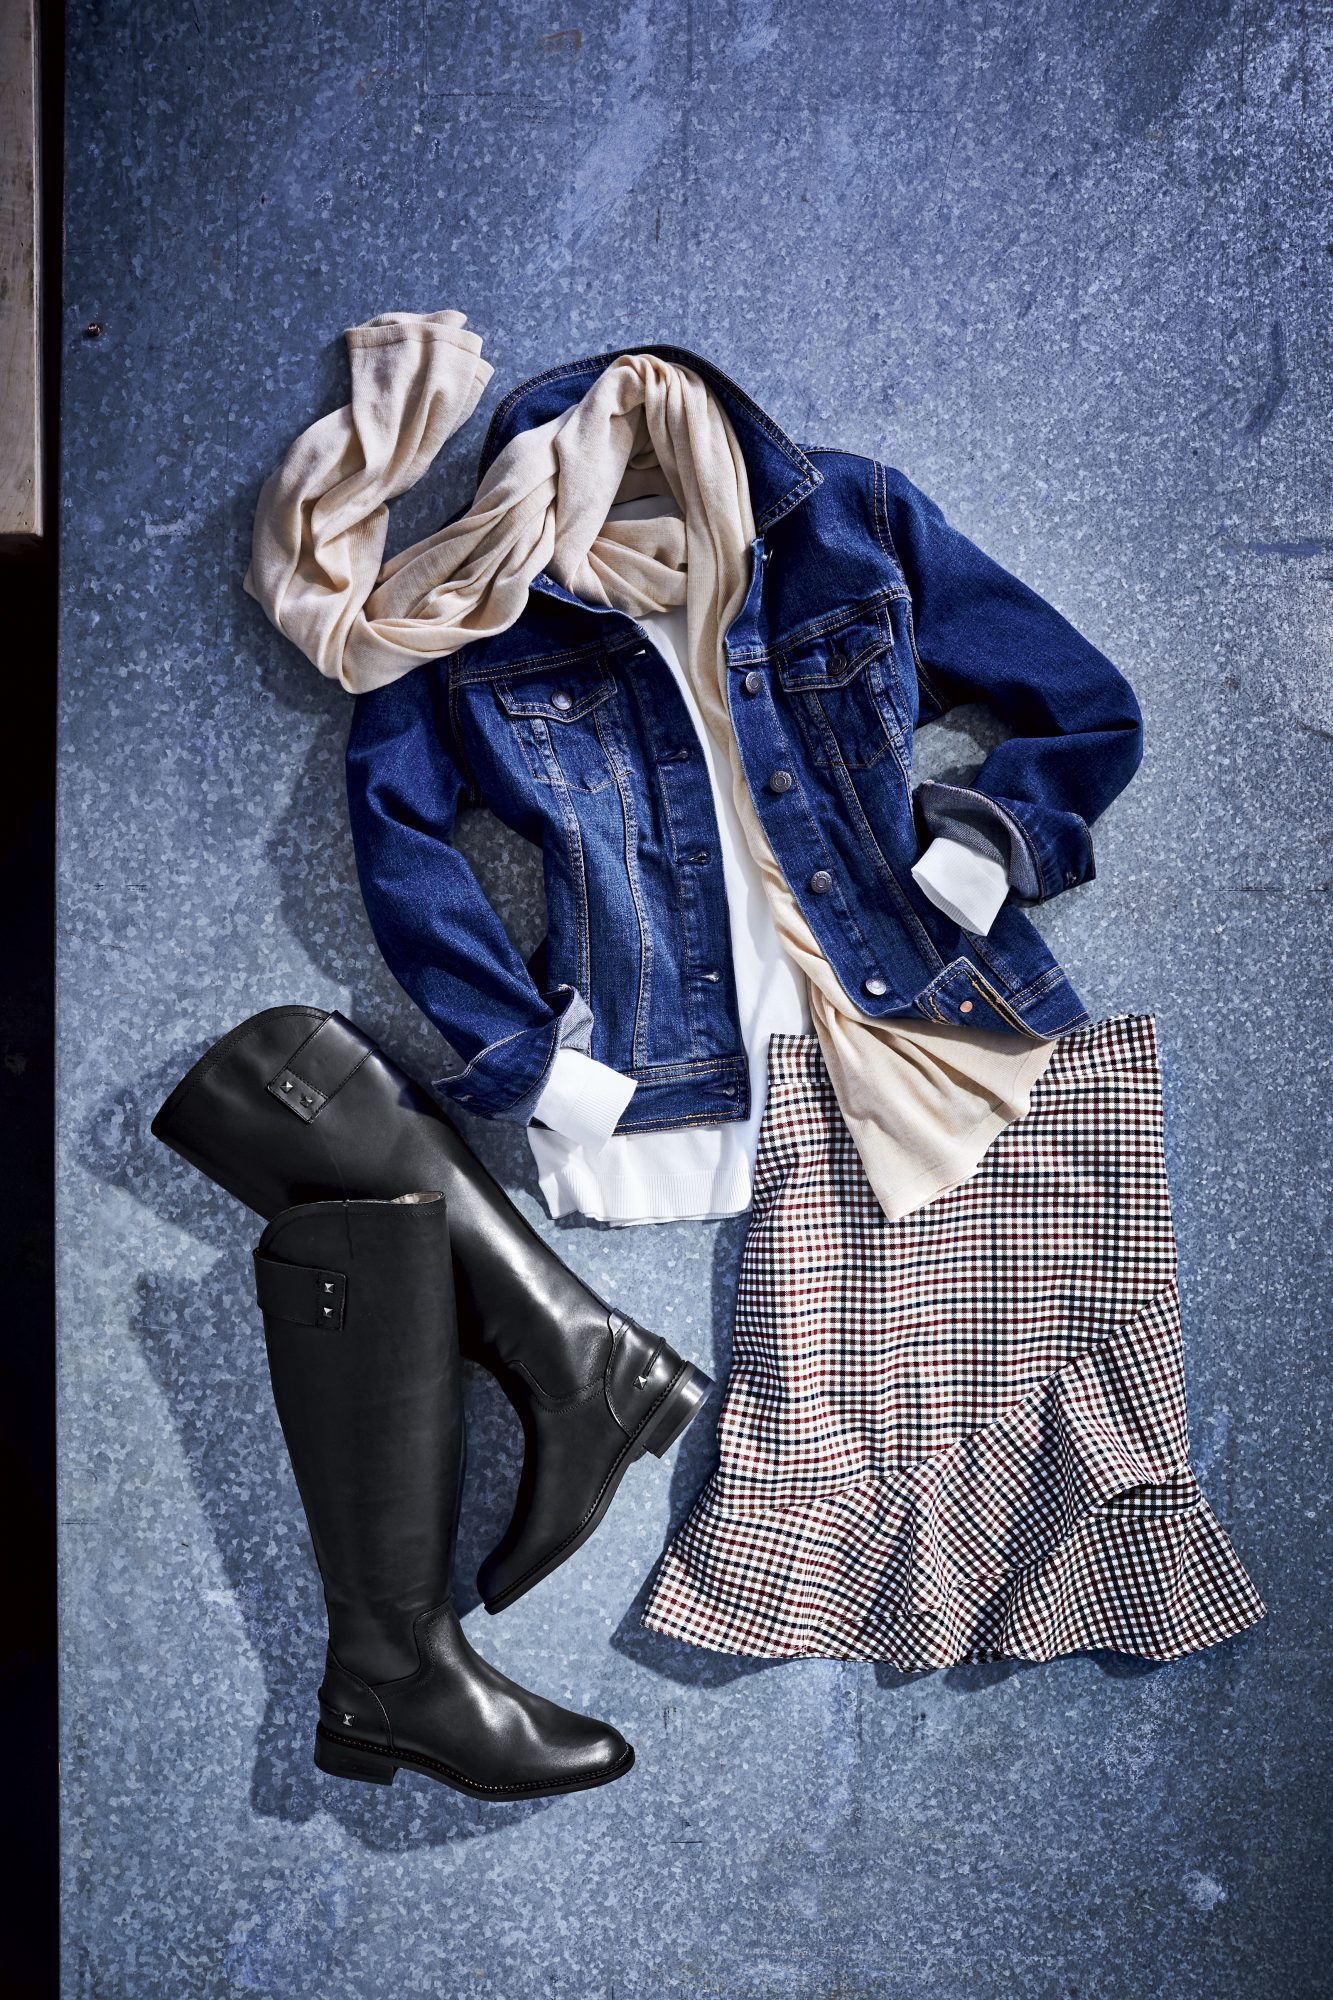 Winter Denim Jacket Outfit with Skirt and Boots